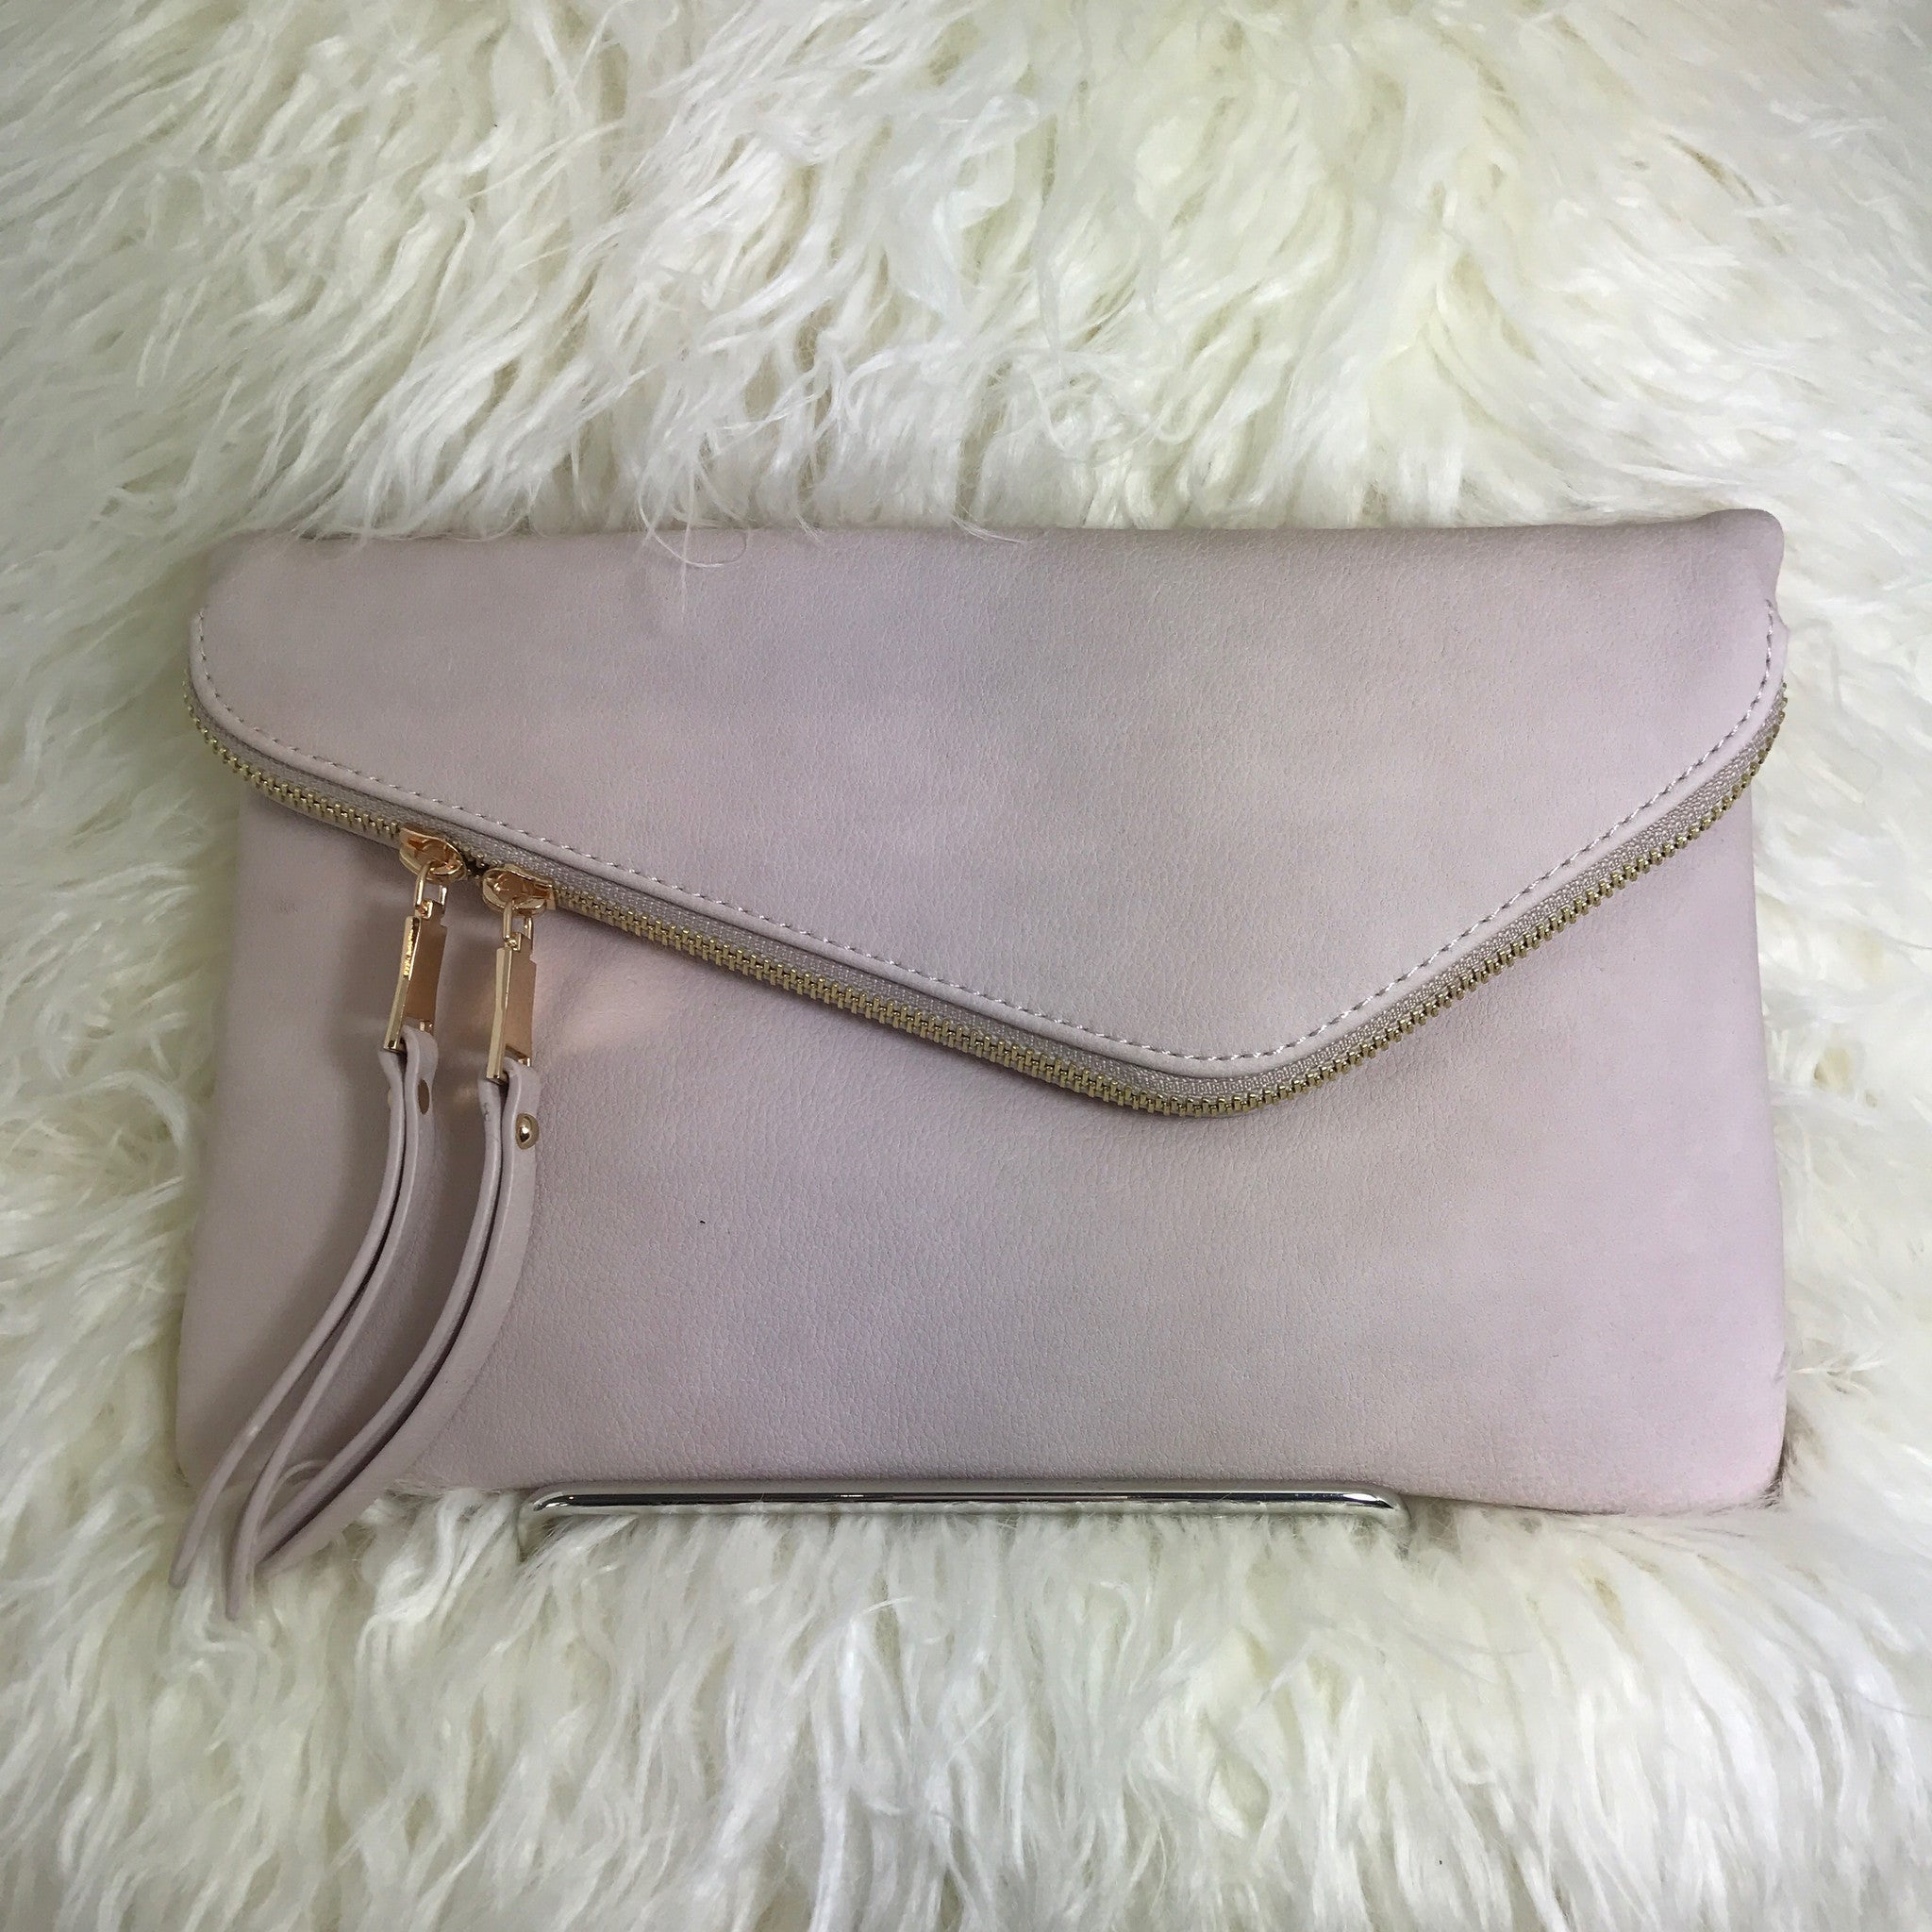 BLUSH ASYMMETRIC FLAP CLUTCH - Glam Envy